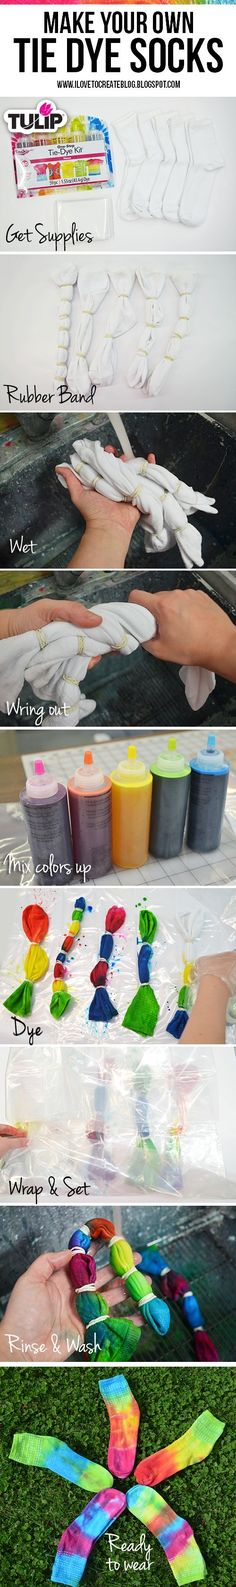 YOUR KIDS WILL GO CRAZY OVER THIS!!! Make your own tie dye socks with Tulip One-Step Tie-Dye!.